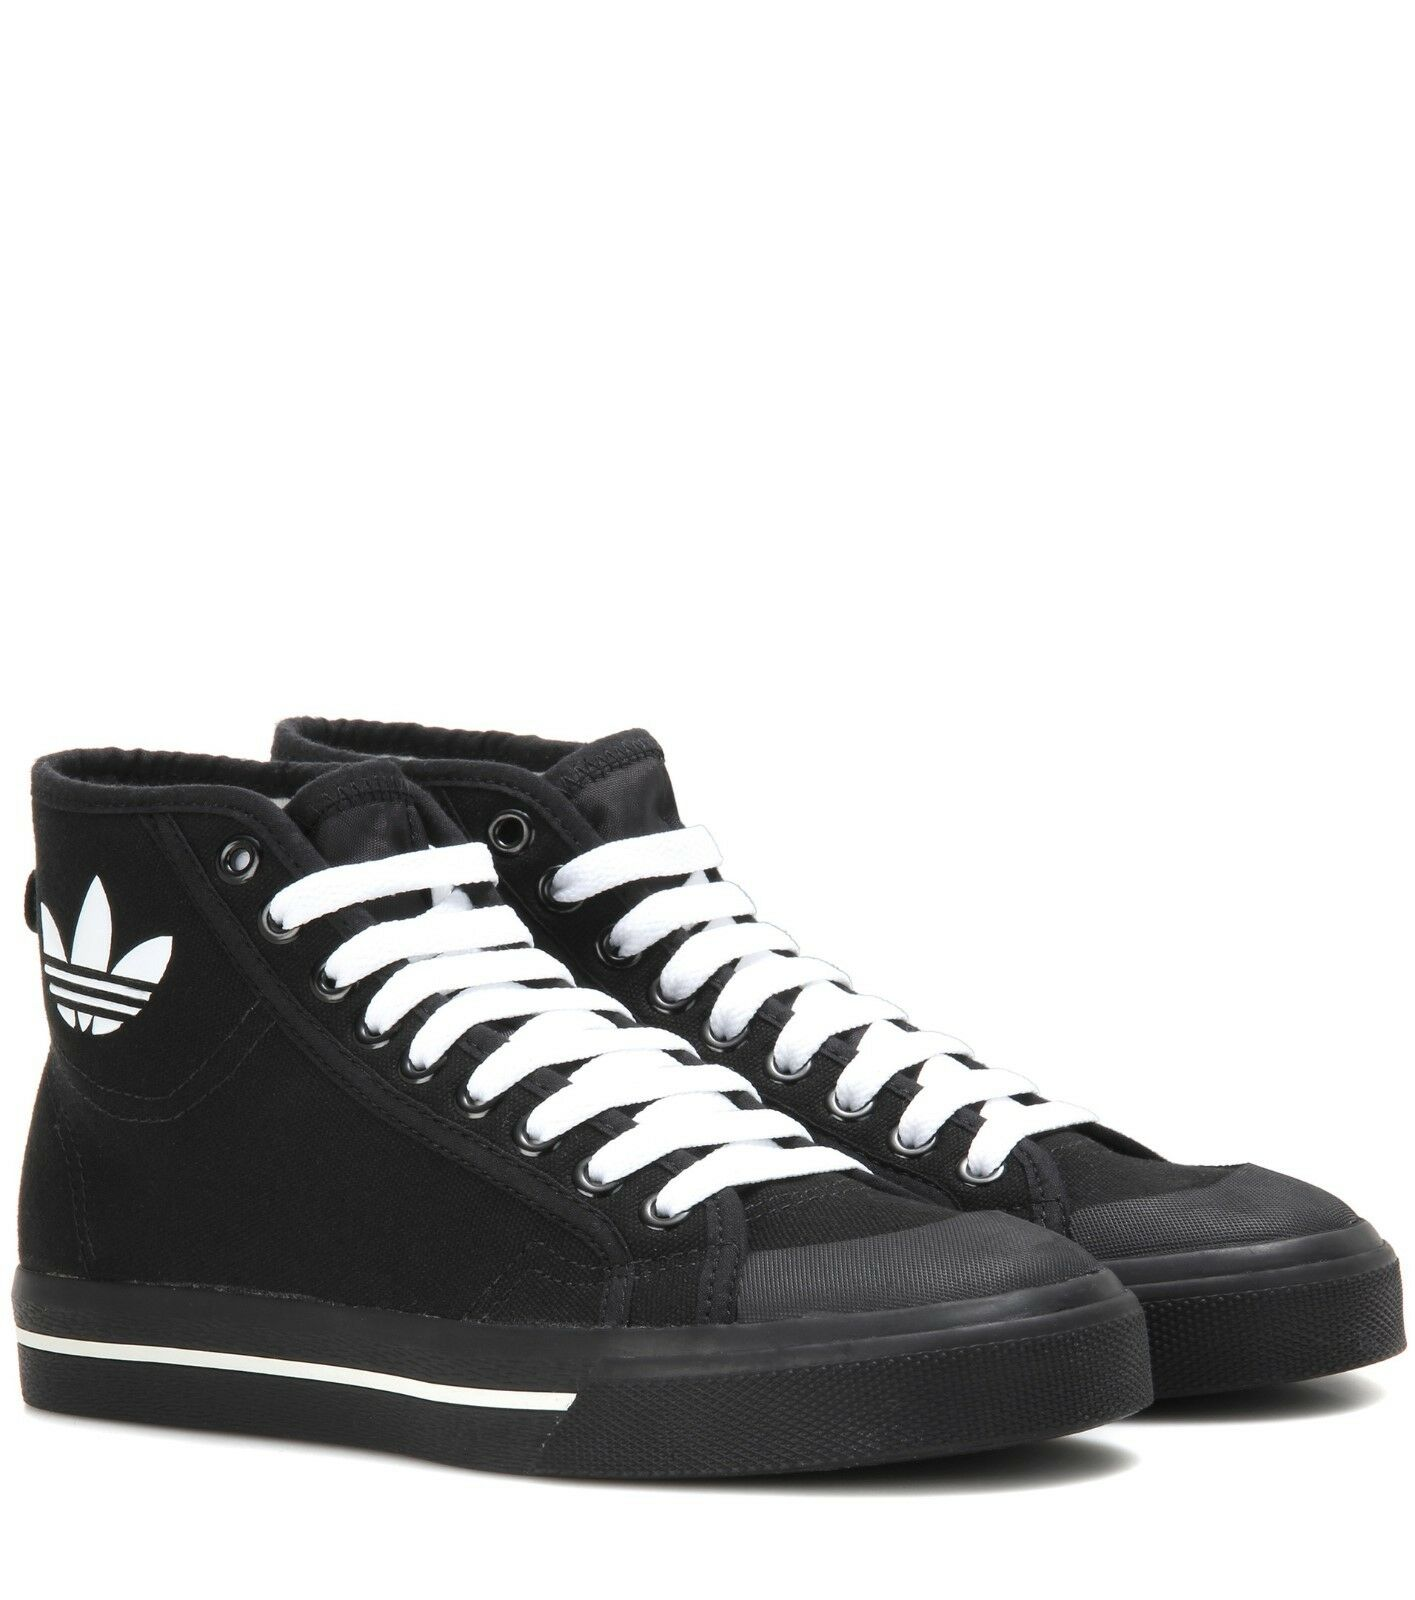 ADIDAS ORIGINALS BY RAF SIMONS LTD HIGH-TOP Turnschuhe SCHWARZ 40,5 NP 245,- UK 7,5